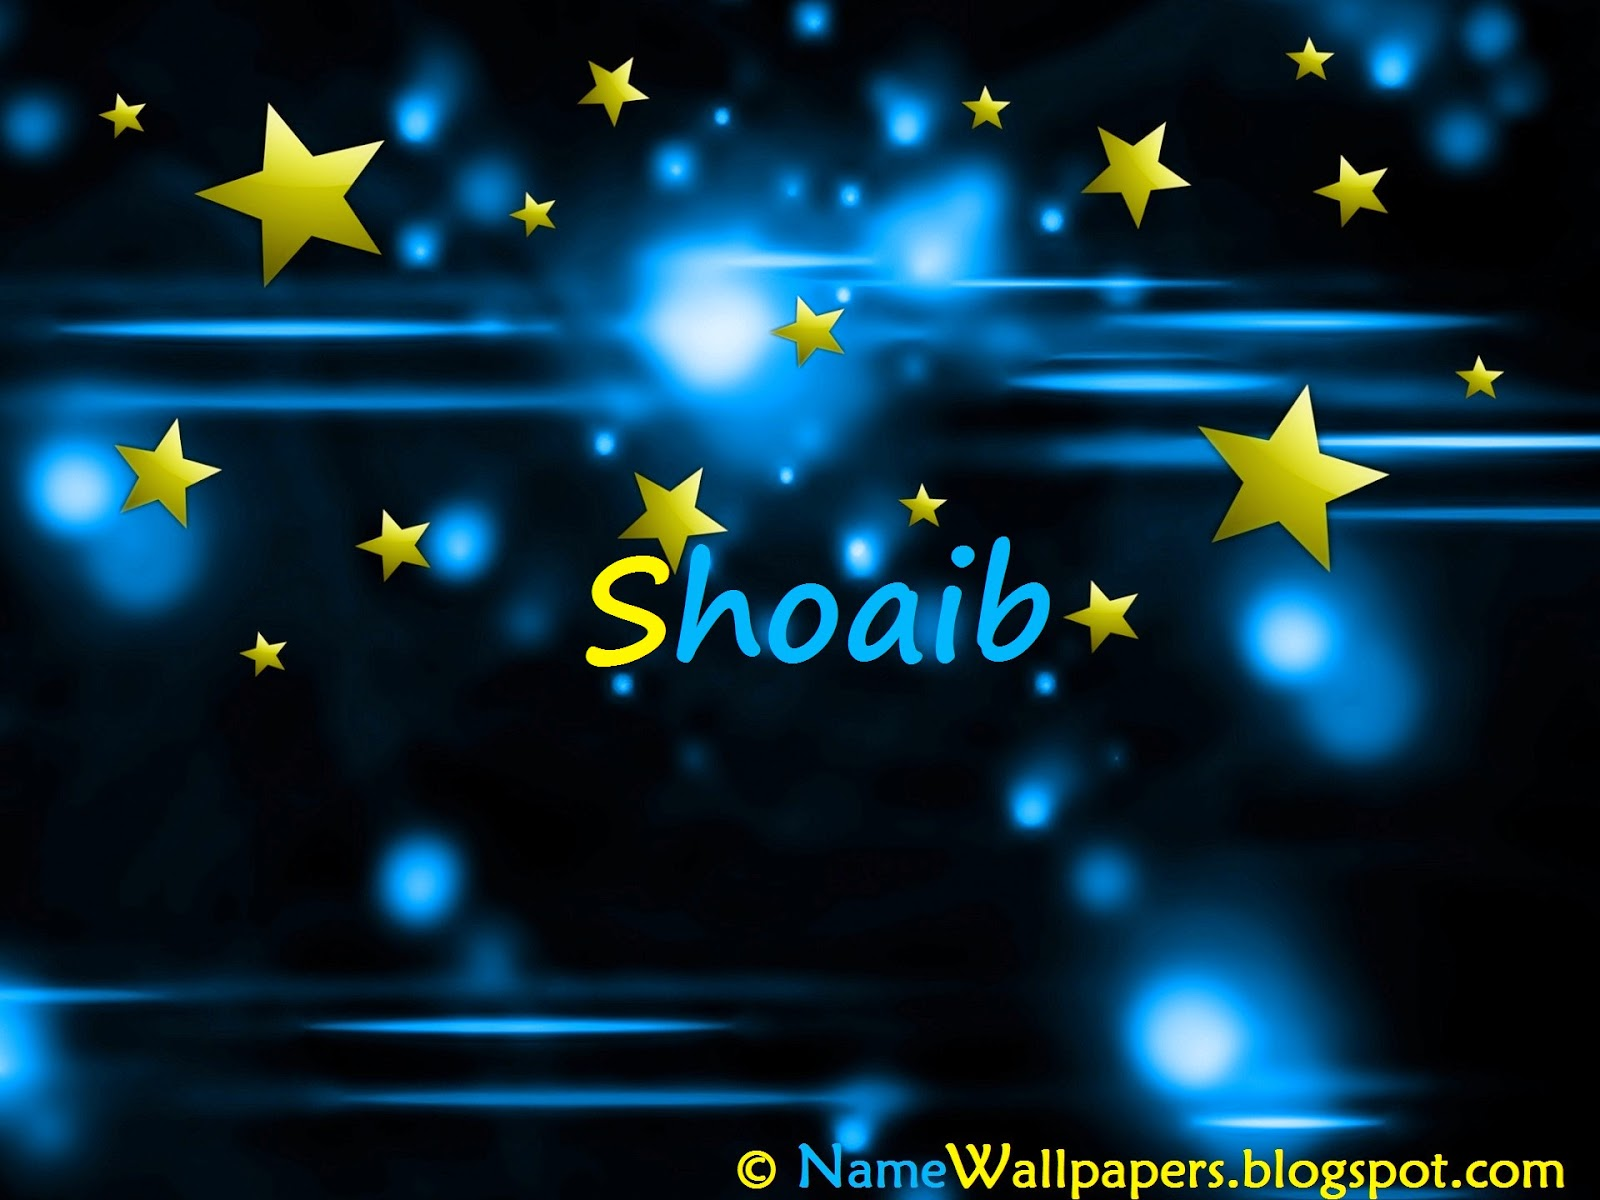 Shoaib Name Wallpapers Shoaib ~ Name Wallpaper Urdu Name ...